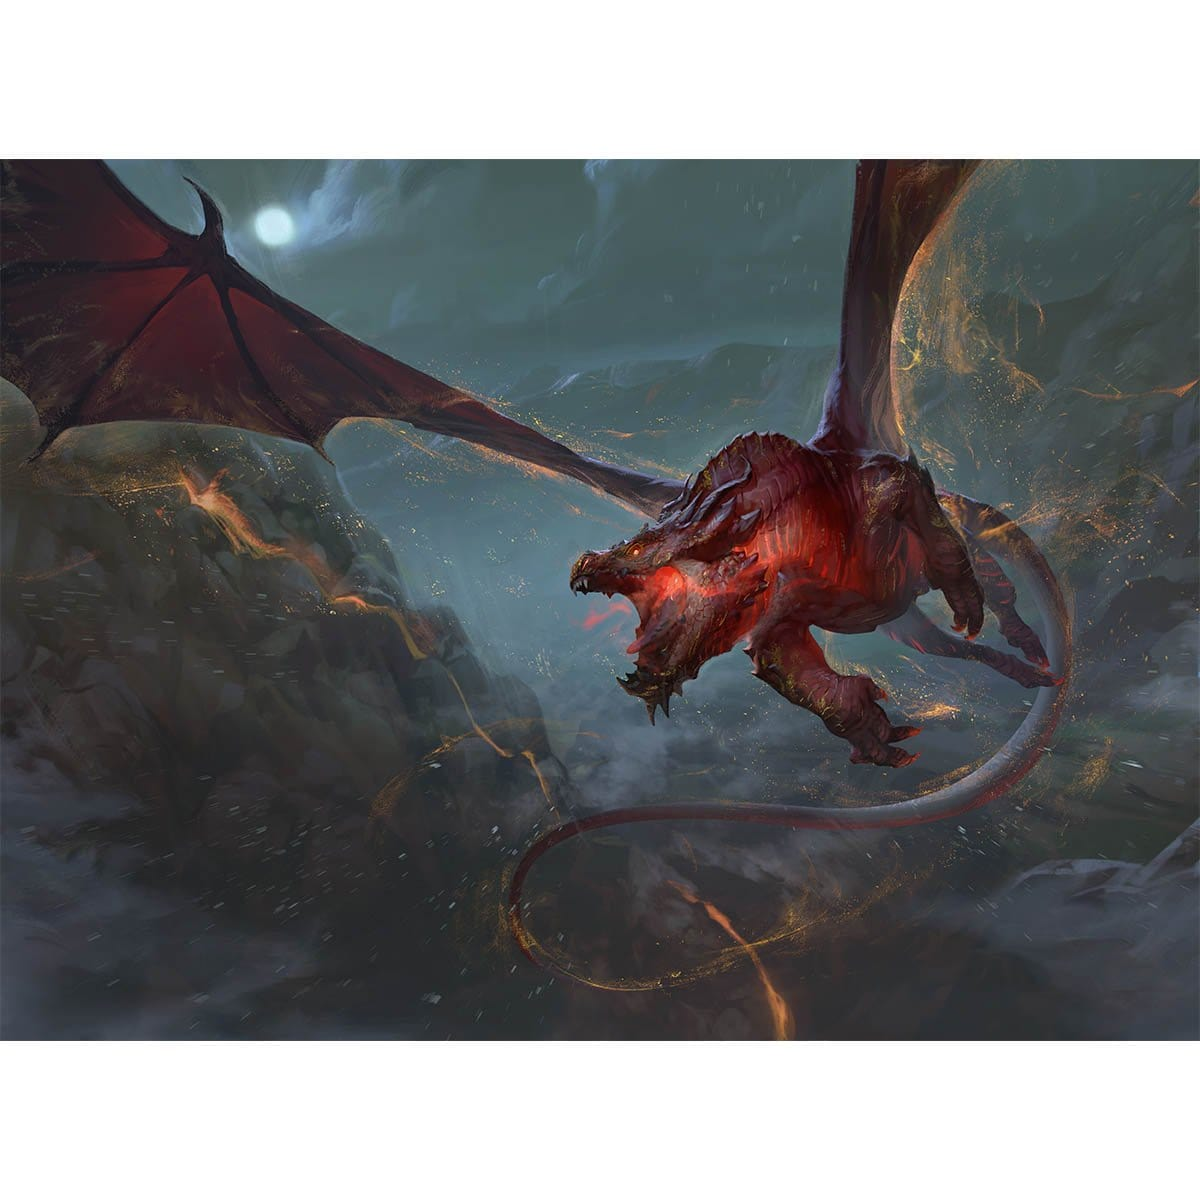 Backdraft Hellkite Print - Print - Original Magic Art - Accessories for Magic the Gathering and other card games